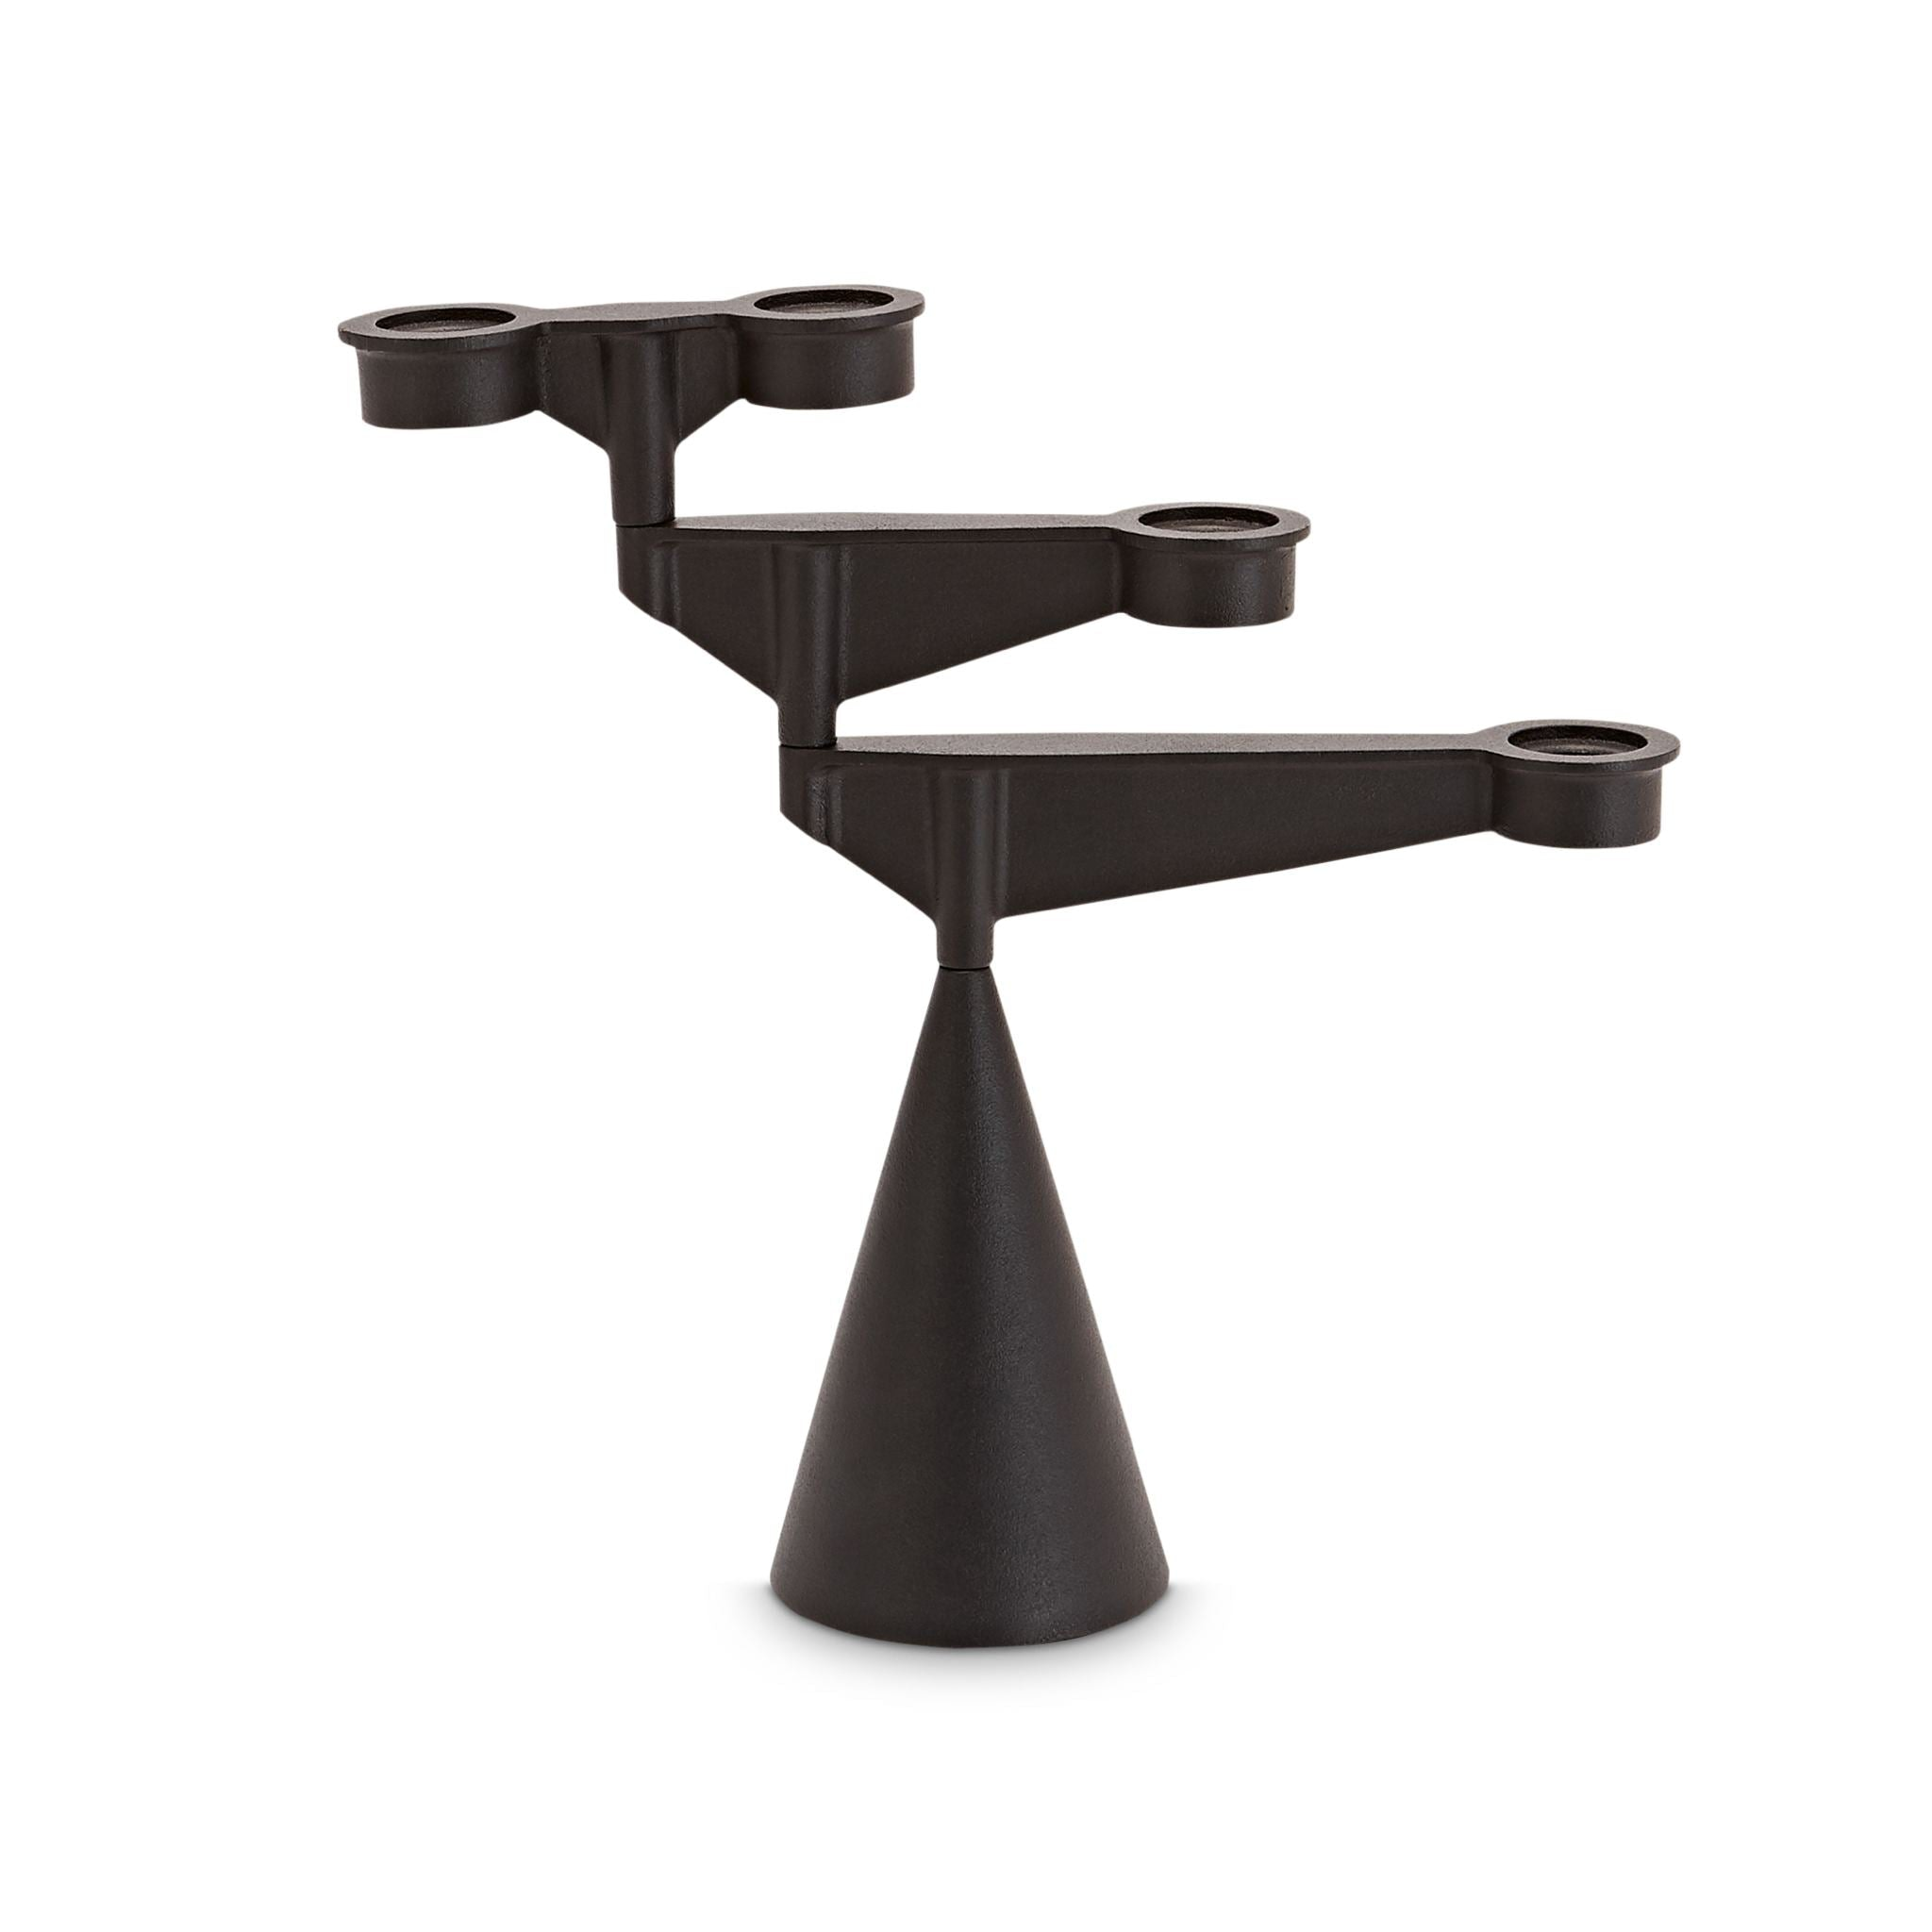 Spin Candelabra Mini by Tom Dixon